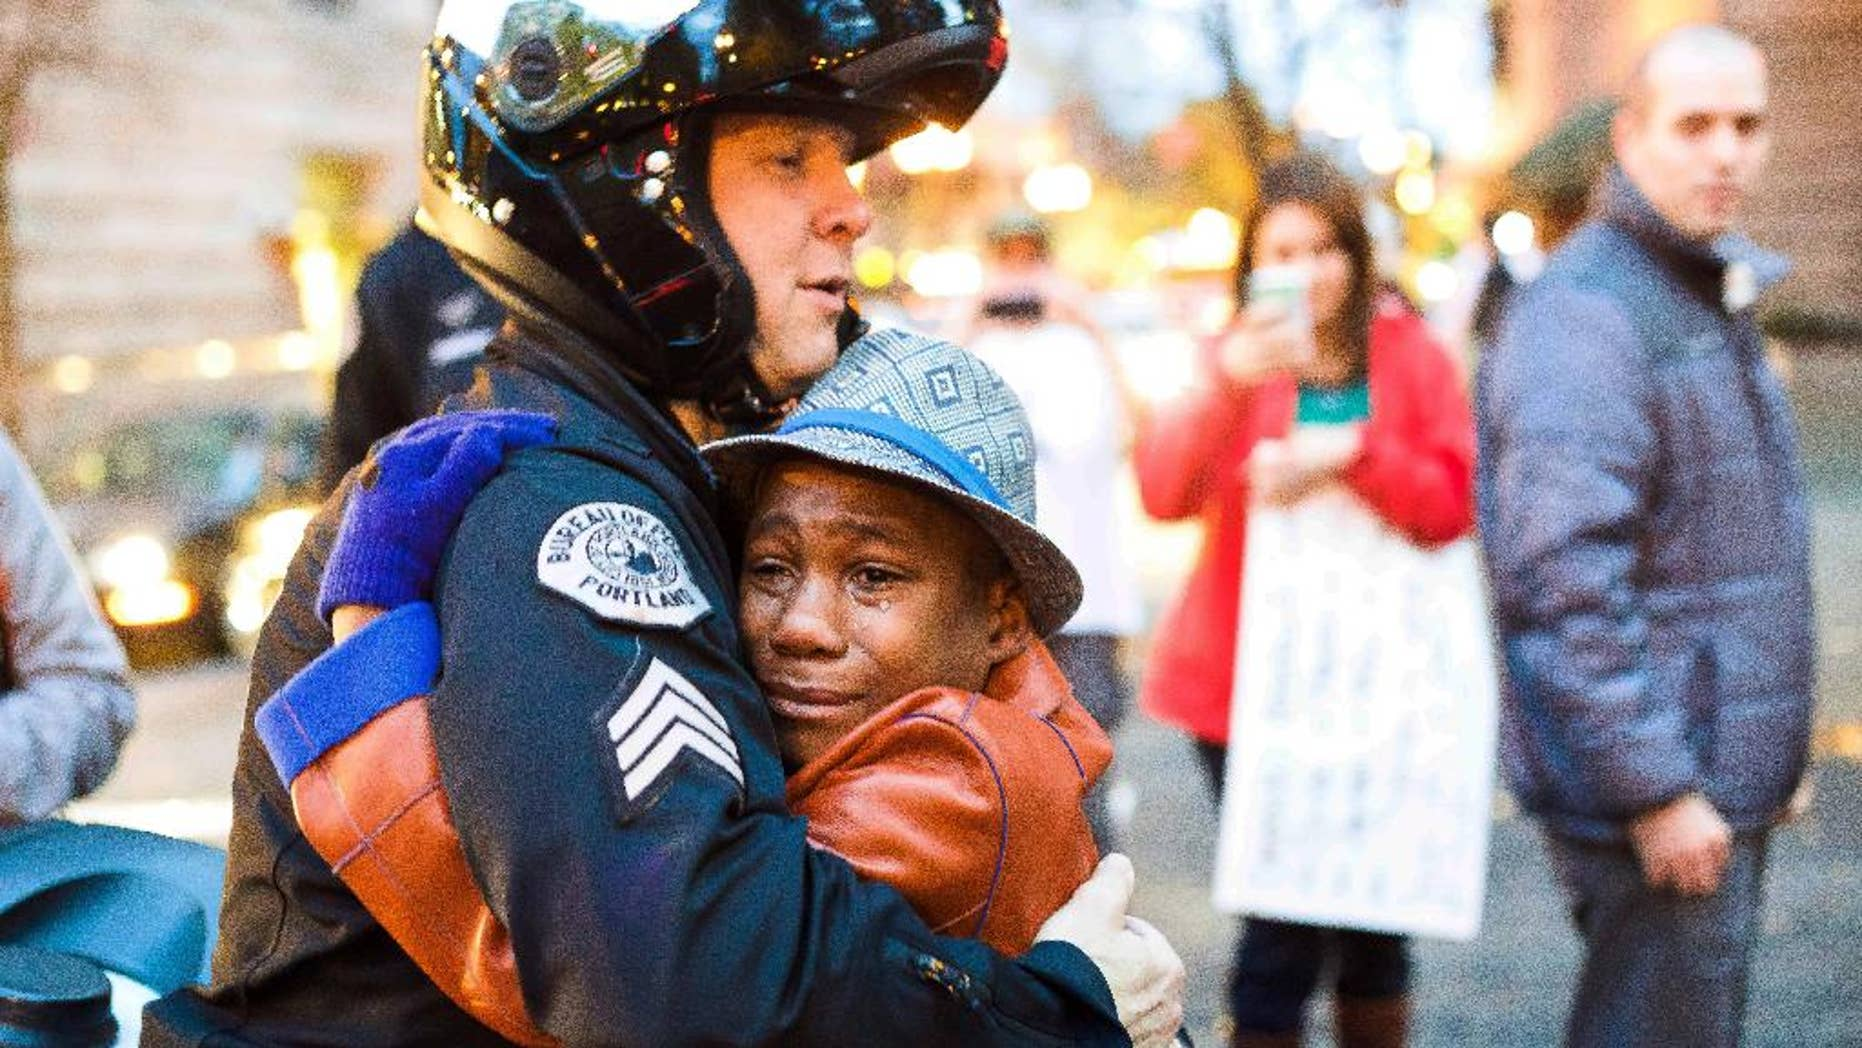 In this Tuesday, Nov. 25, 2014 photo provided by Johnny Nguyen, Portland police Sgt. Bret Barnum, left, and Devonte Hart, 12, hug at a rally in Portland, Ore., where people had gathered in support of the protests in Ferguson, Mo. (AP Photo/Johnny Huu Nguyen)